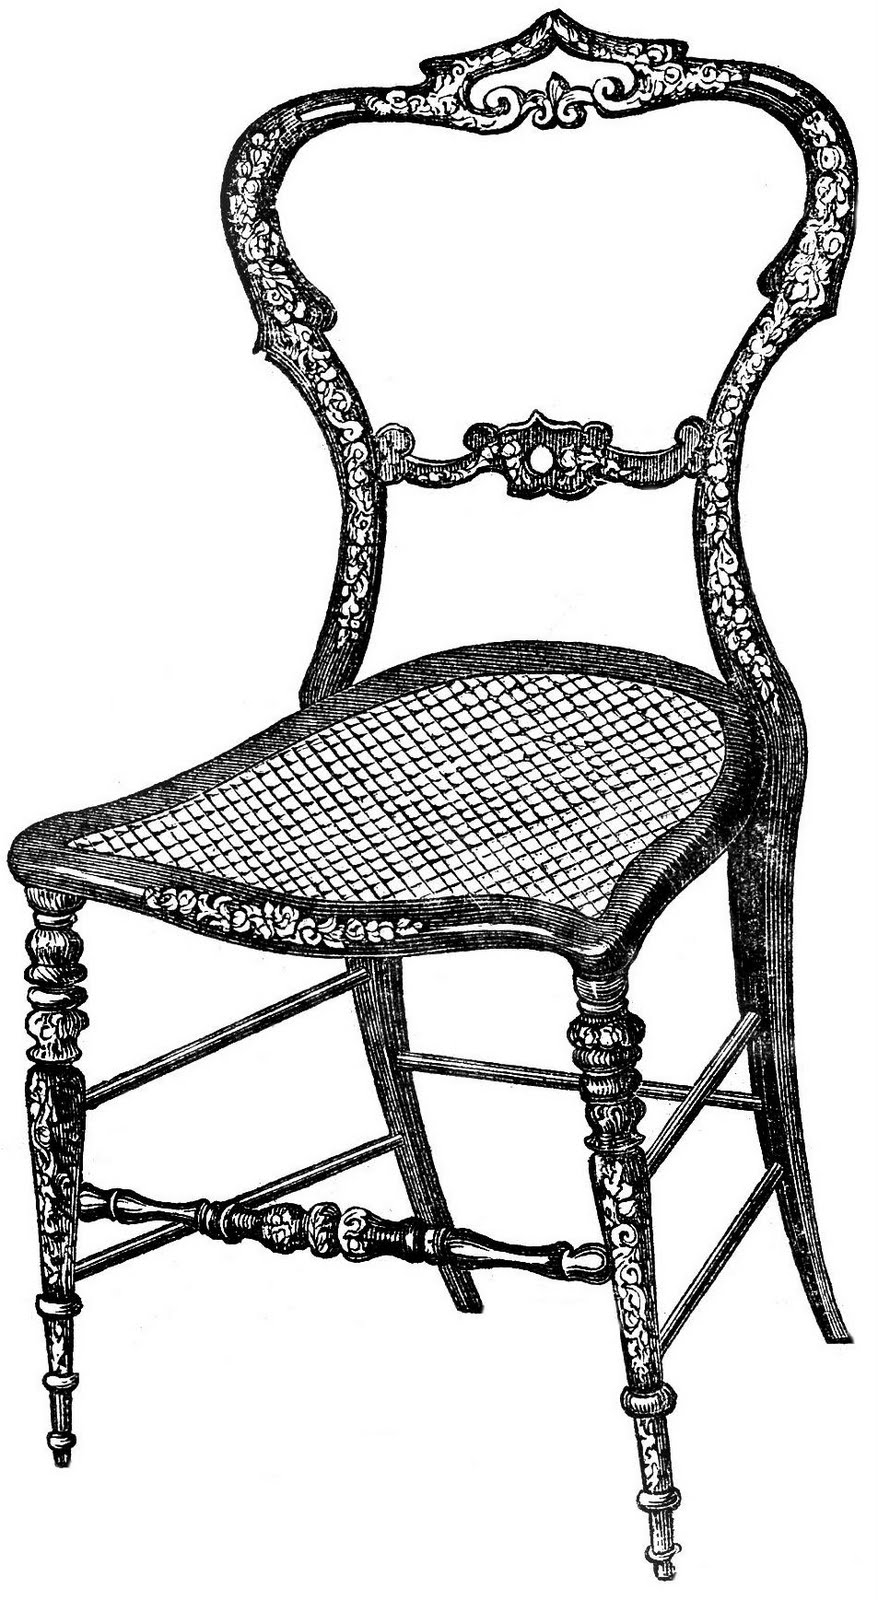 Furniture clipart vintage chair Vintage Frenchy Image Image Cute